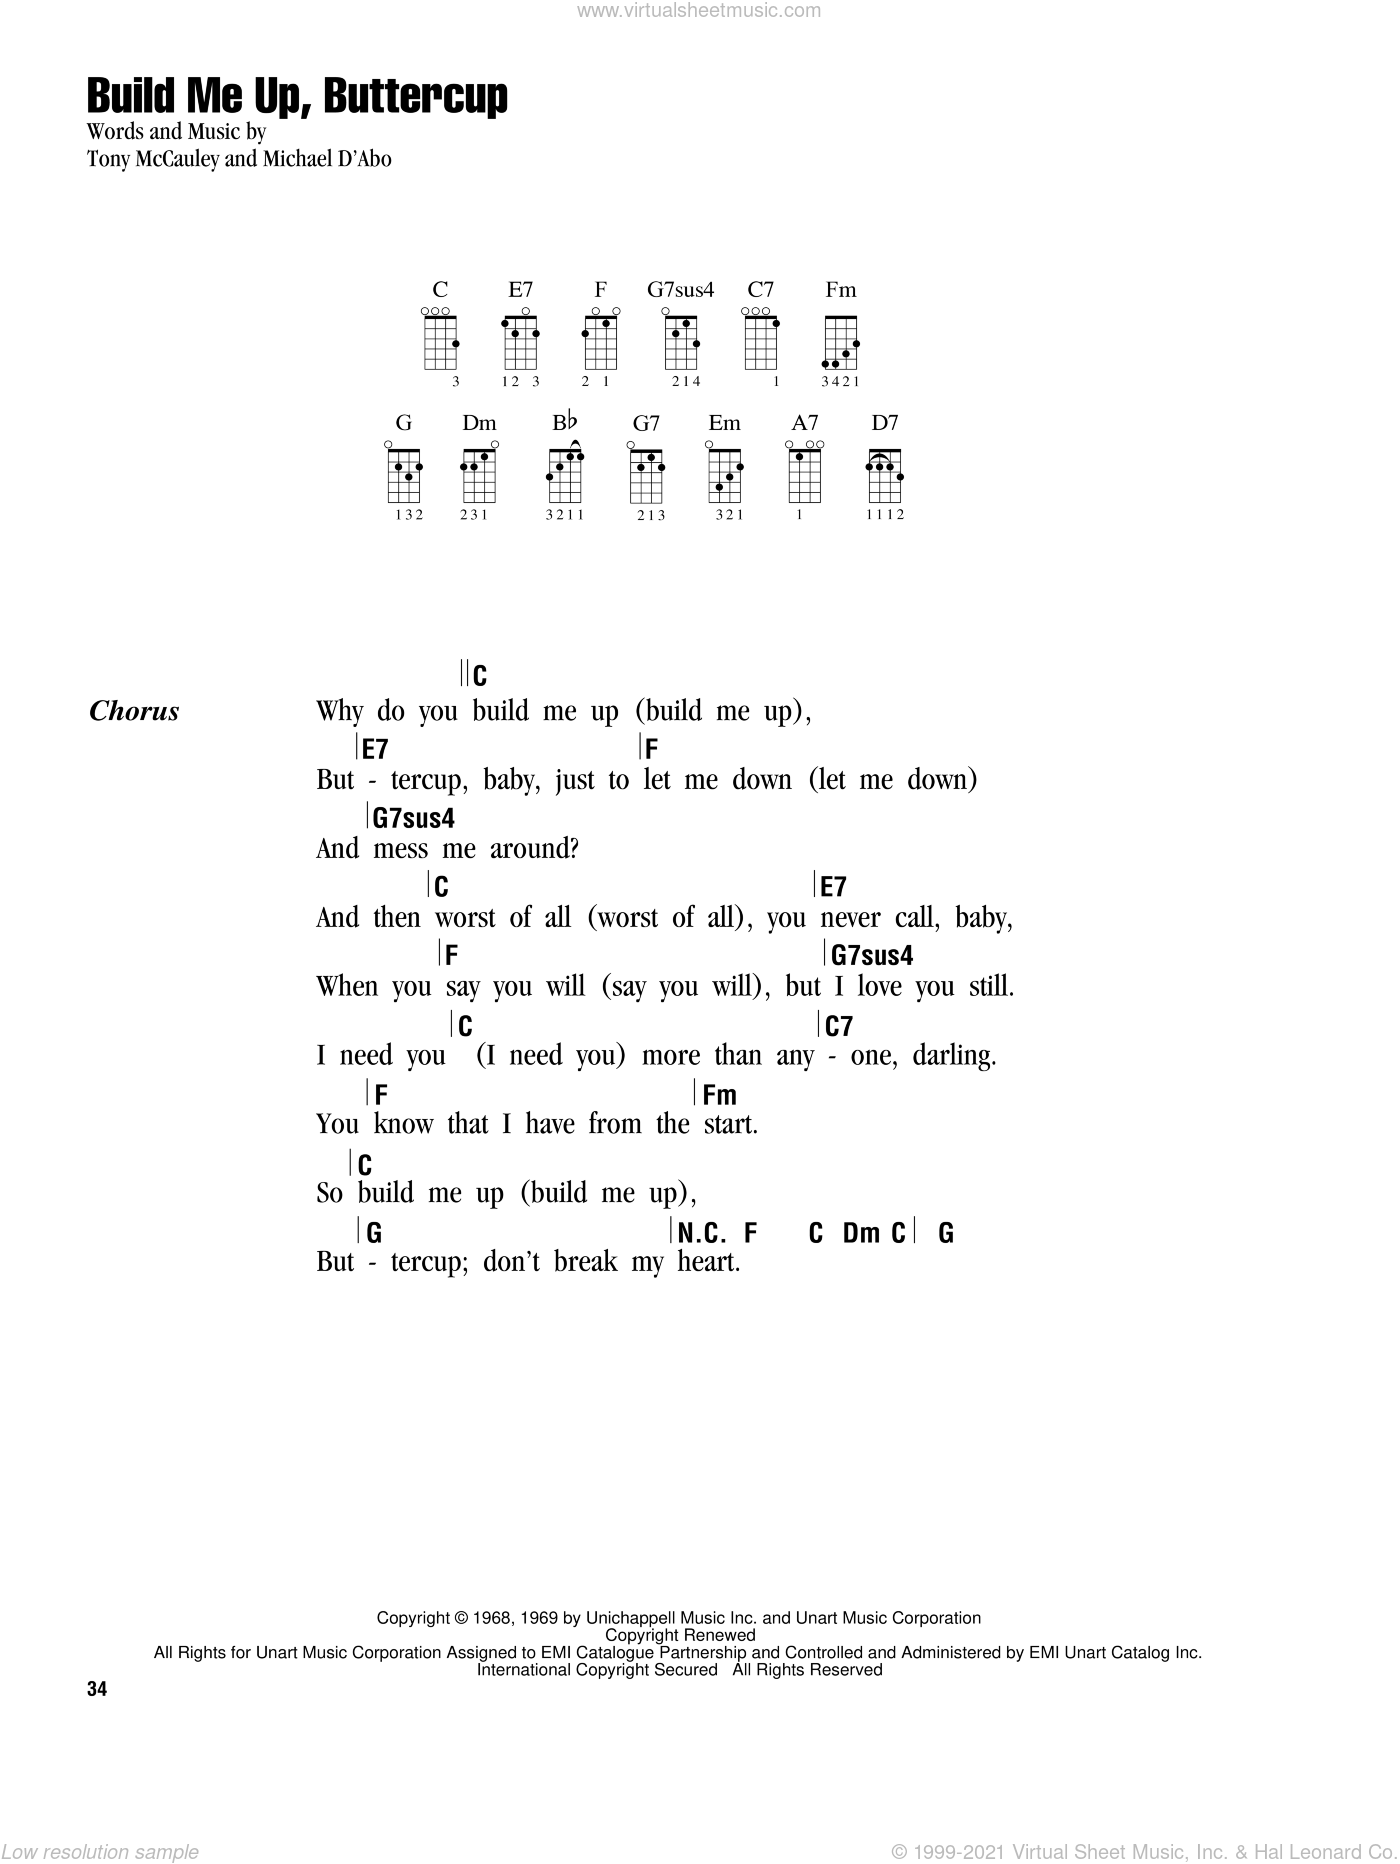 Build Me Up, Buttercup sheet music for ukulele (chords) by Tony MacAuley and The Foundations. Score Image Preview.